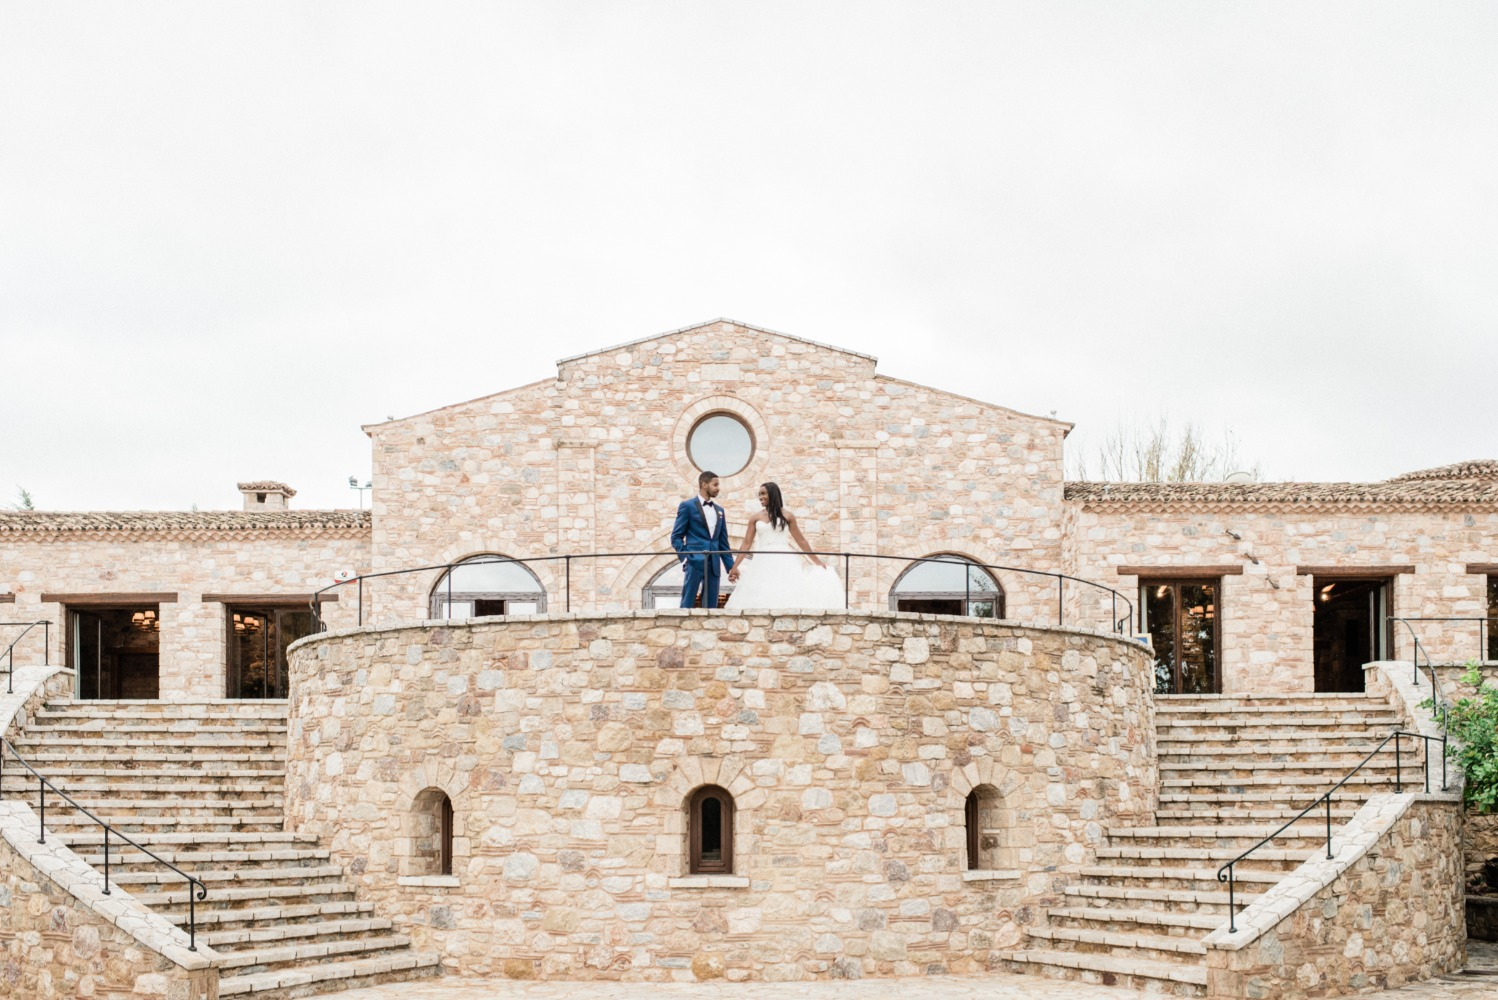 Brenae and Ryan's Romantic Destination Wedding in Greece gallery image 13